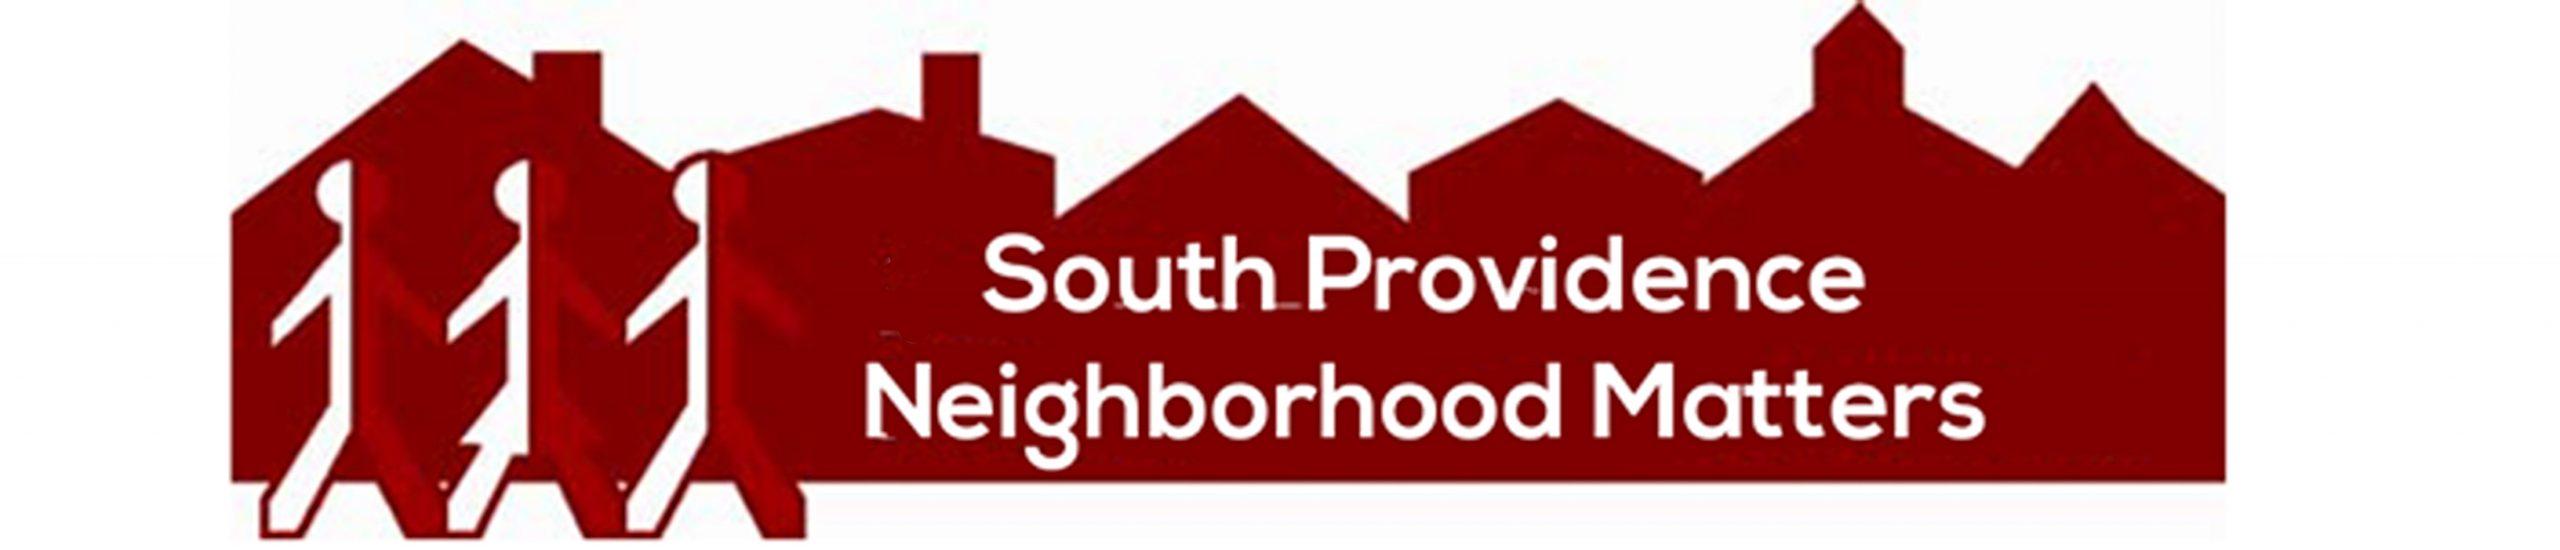 South Providence Neighborhood Matters